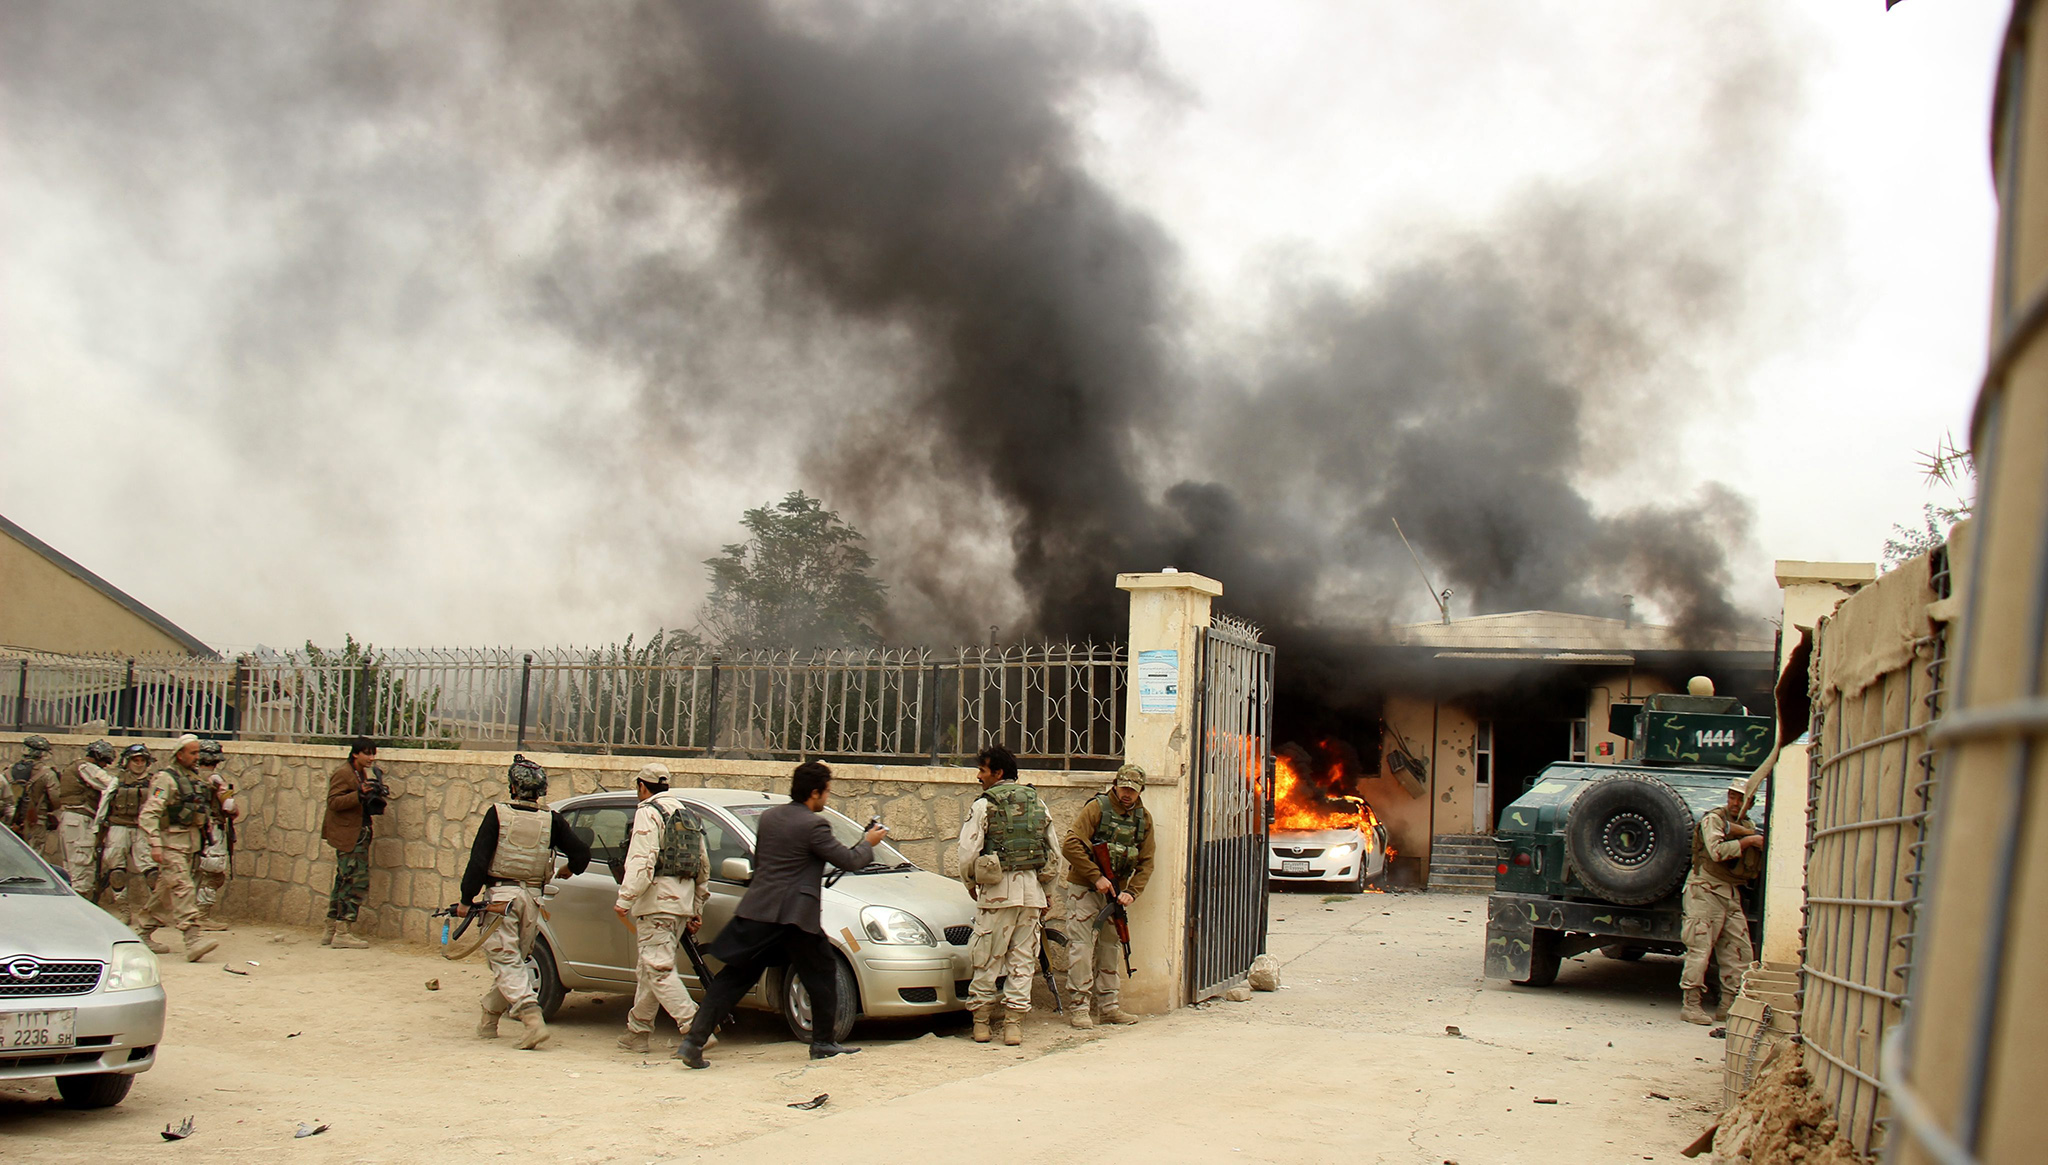 Suicide bombers target attorney general's office in Afghanistan